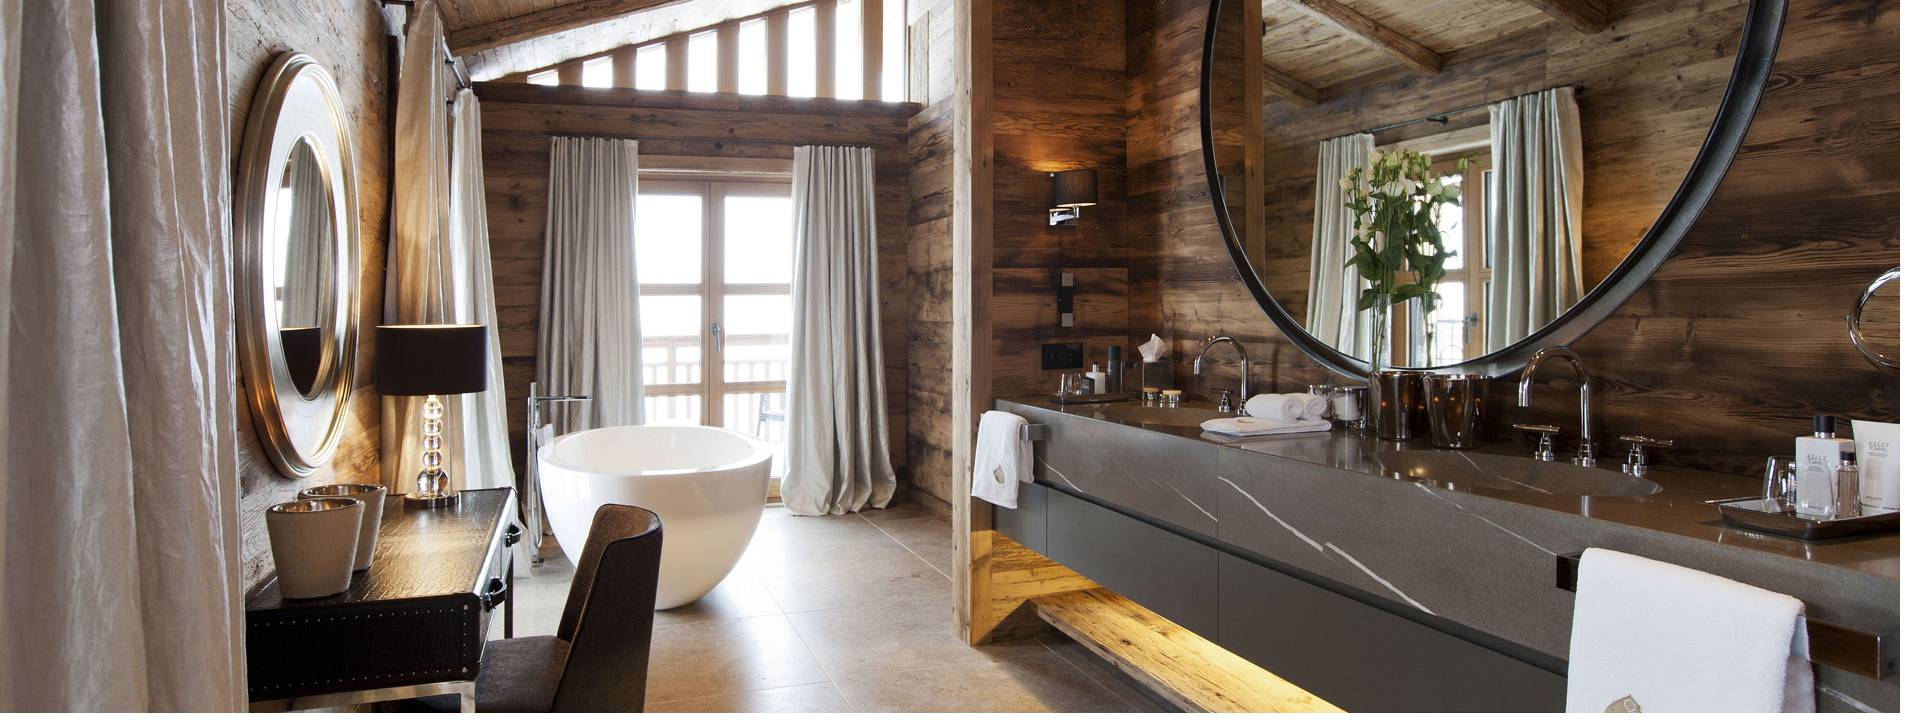 Luxury Winter Chalet,  bathroom, Switzerland